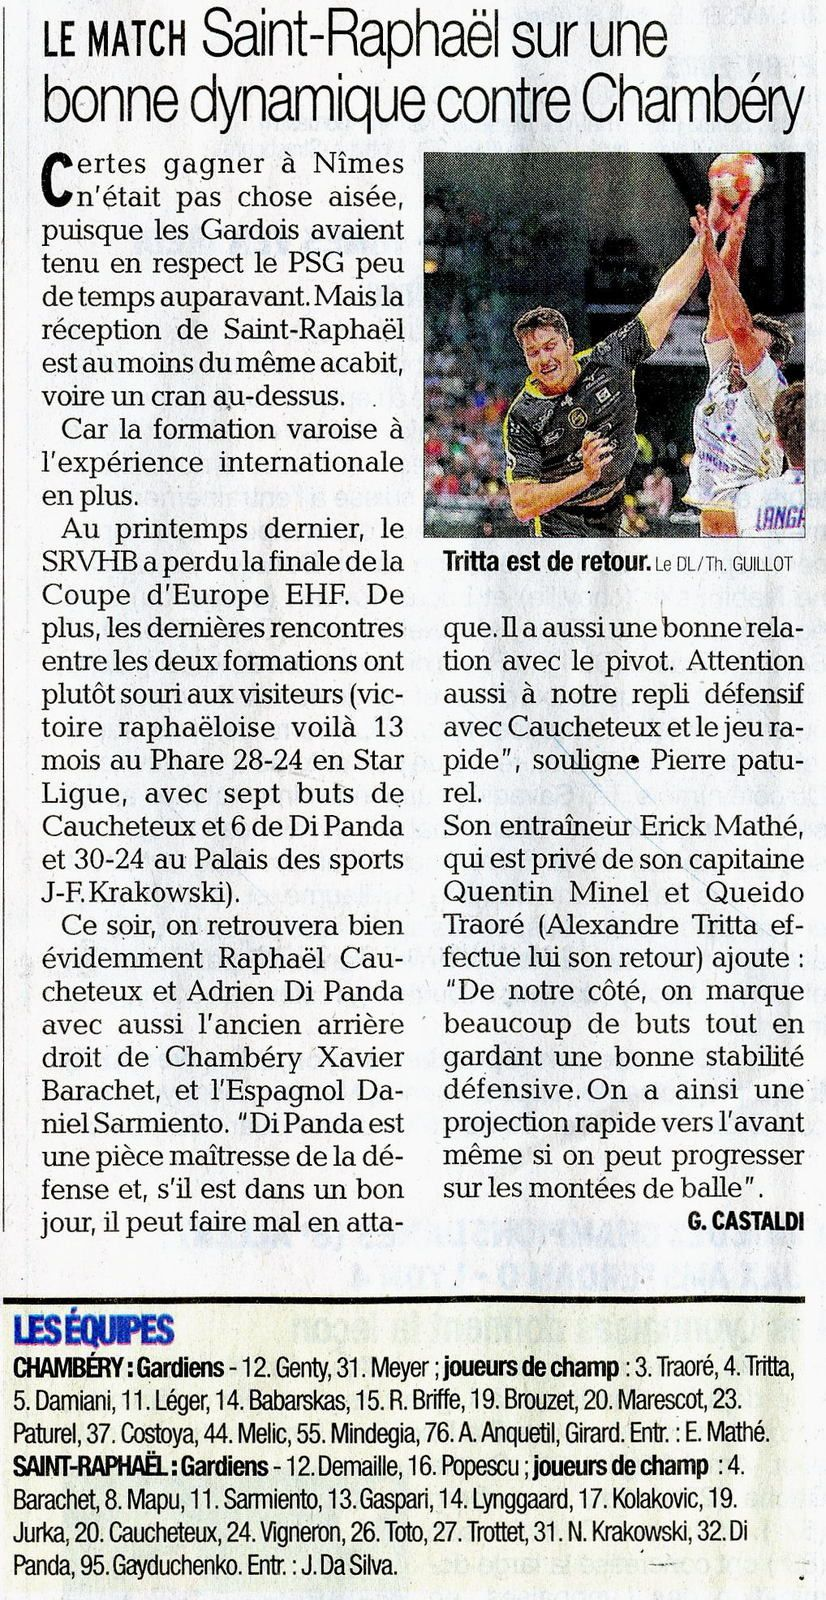 LSL CHAMBERY - SAINT-RAPHAËL article du DL avant match 18 octobre 2018